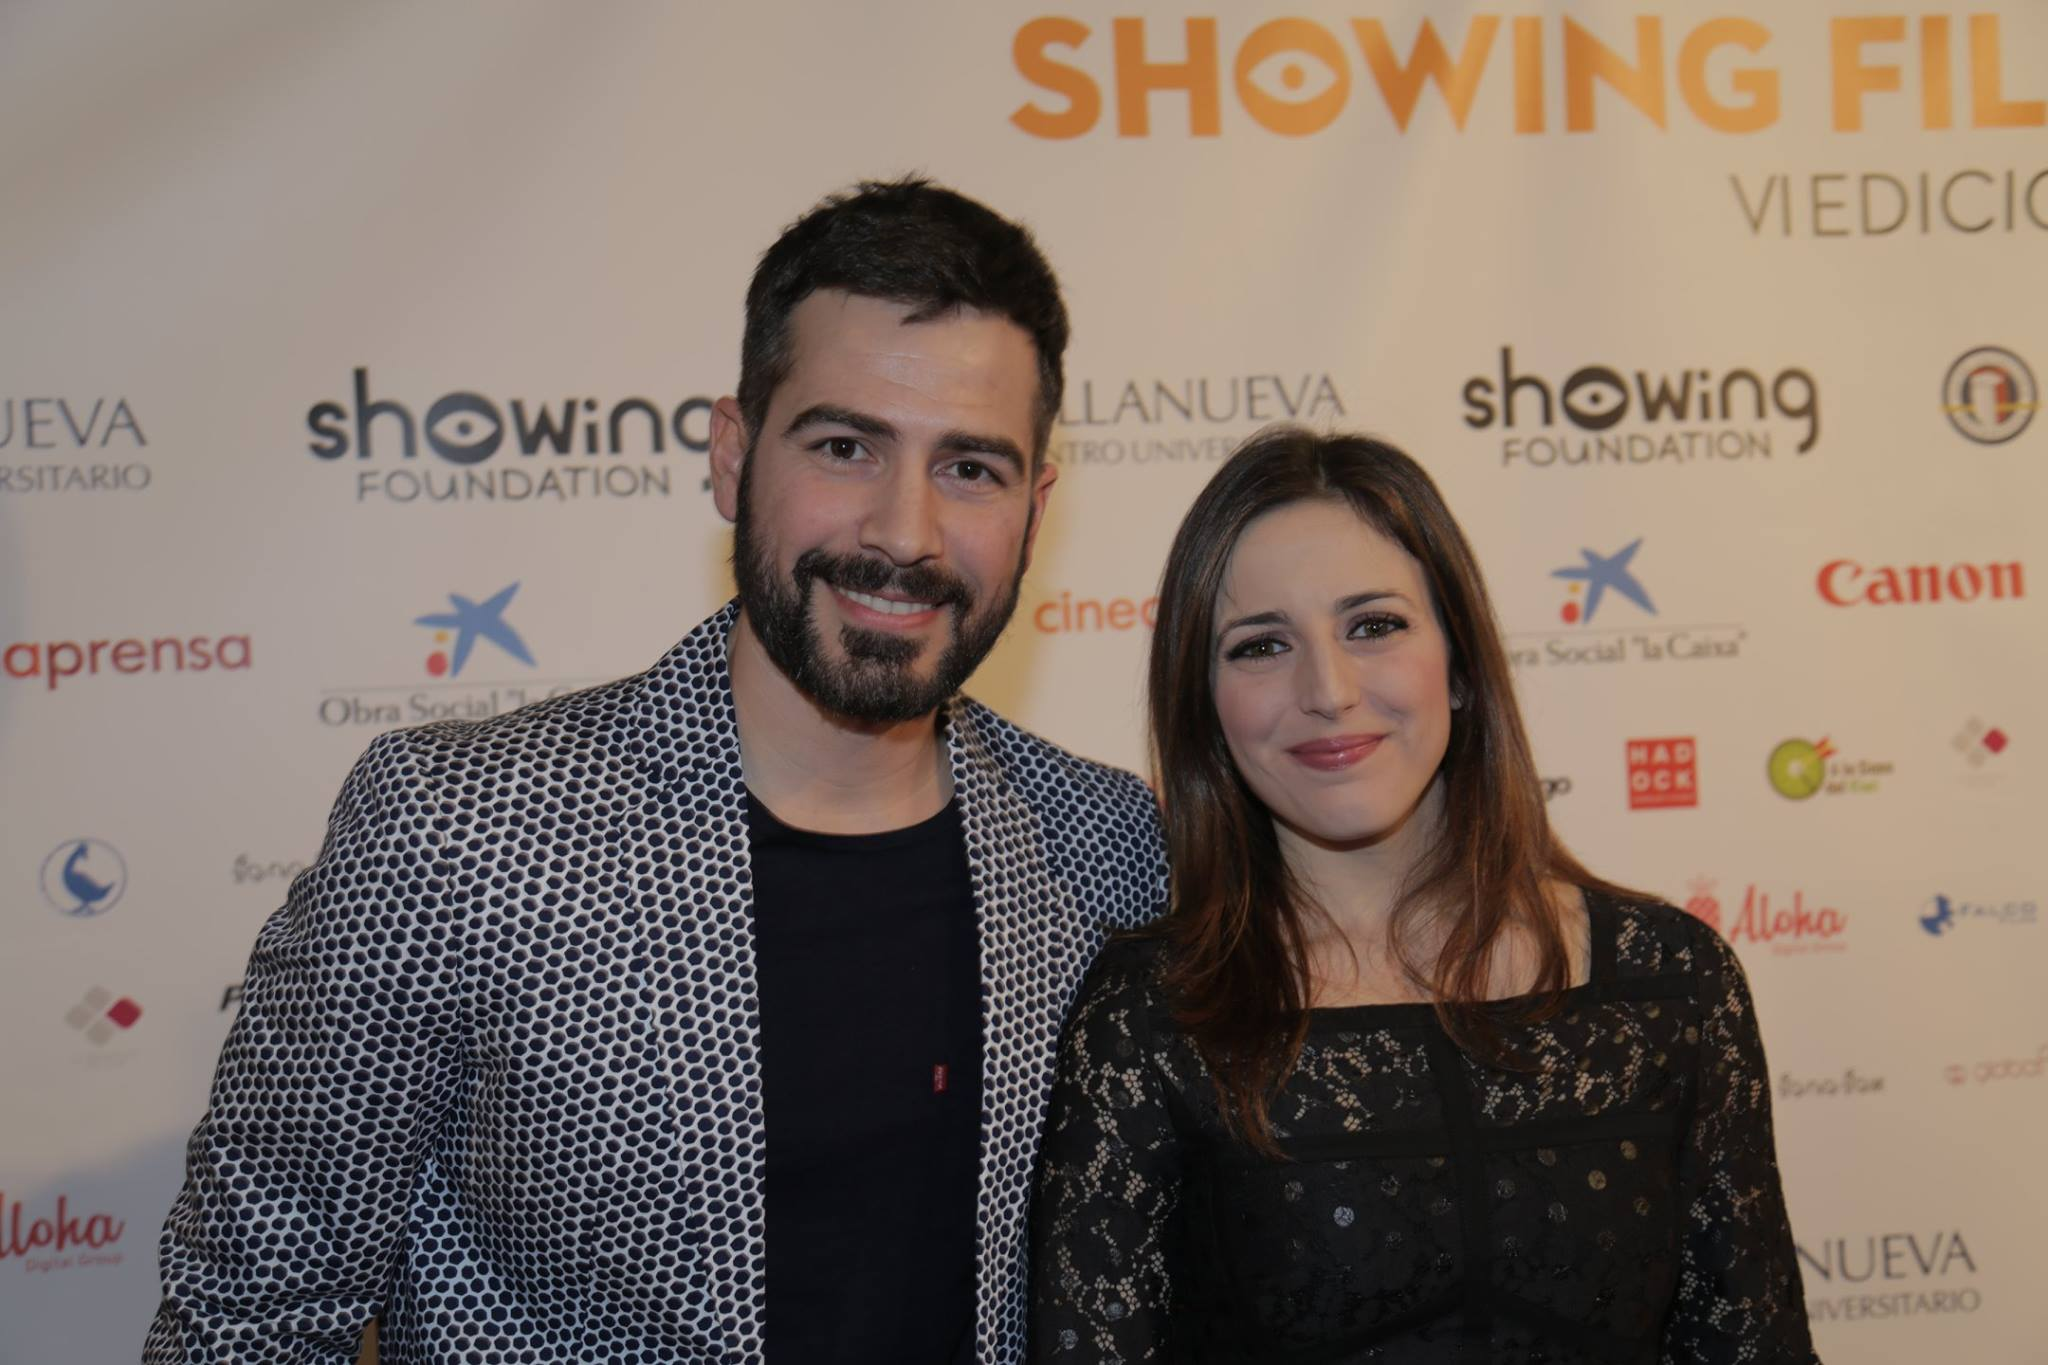 Ruth Núñez en los Showing Film Awards